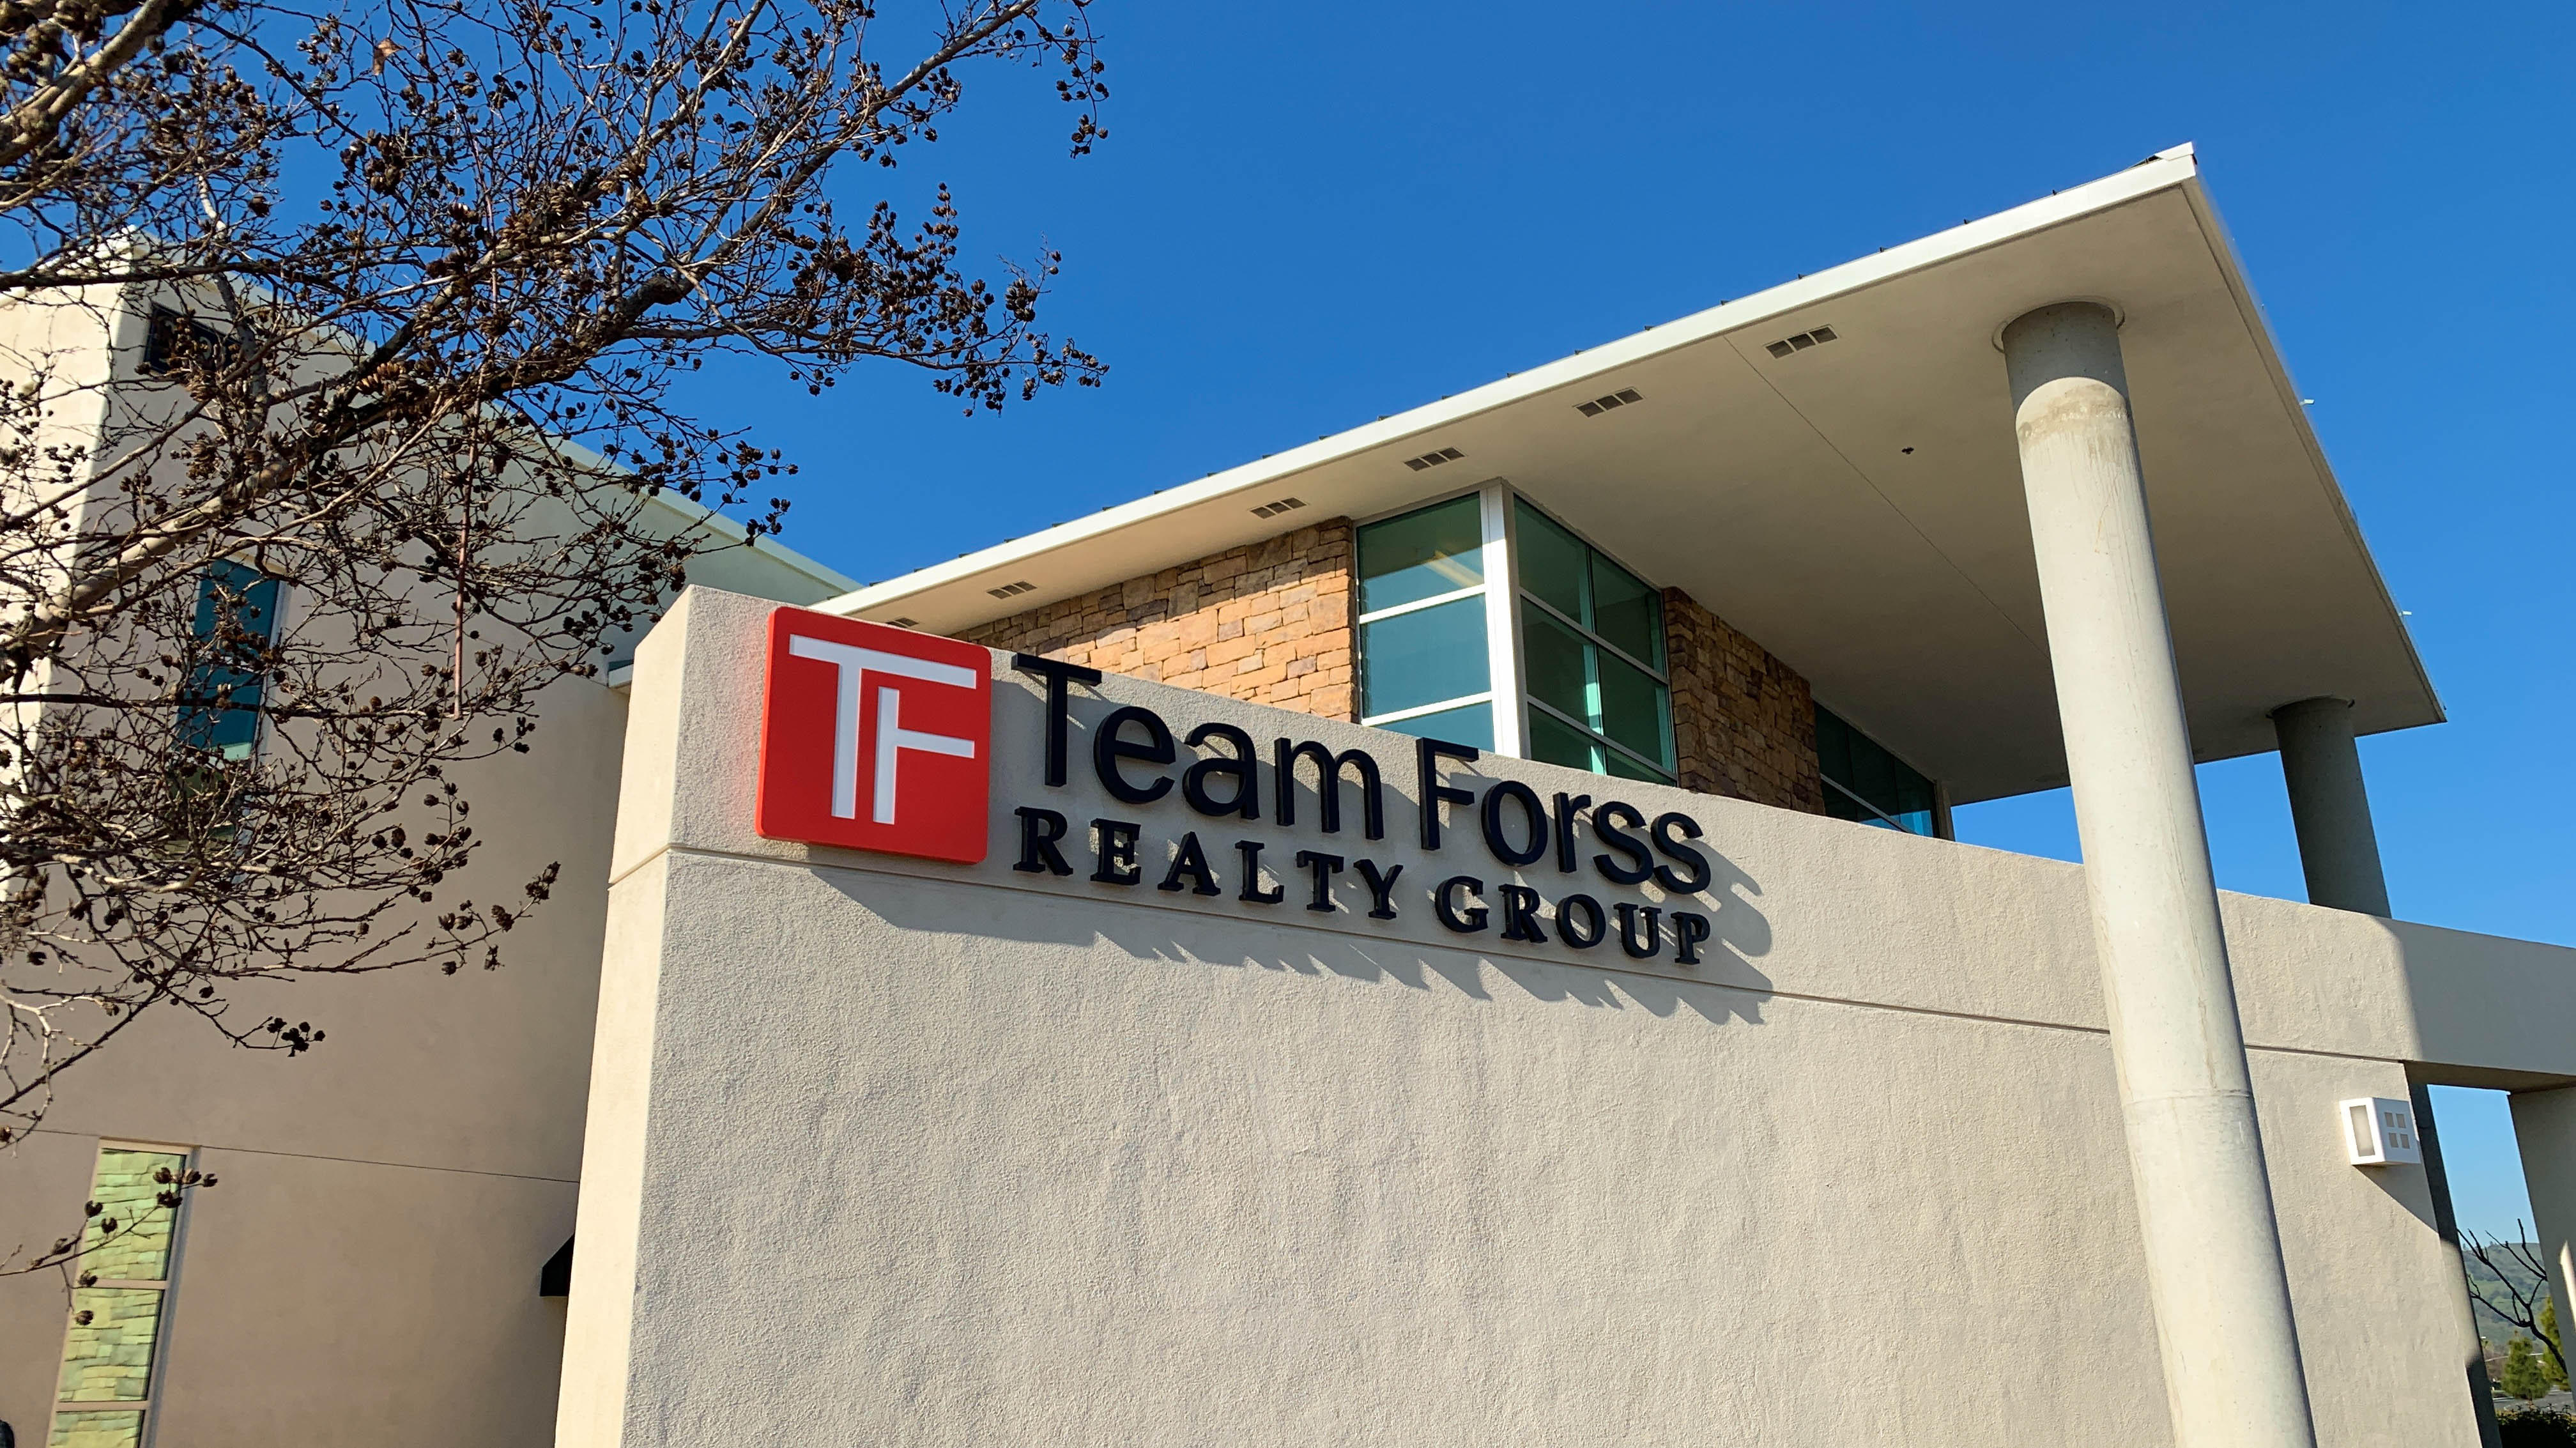 Team Forss Realty Group image 6